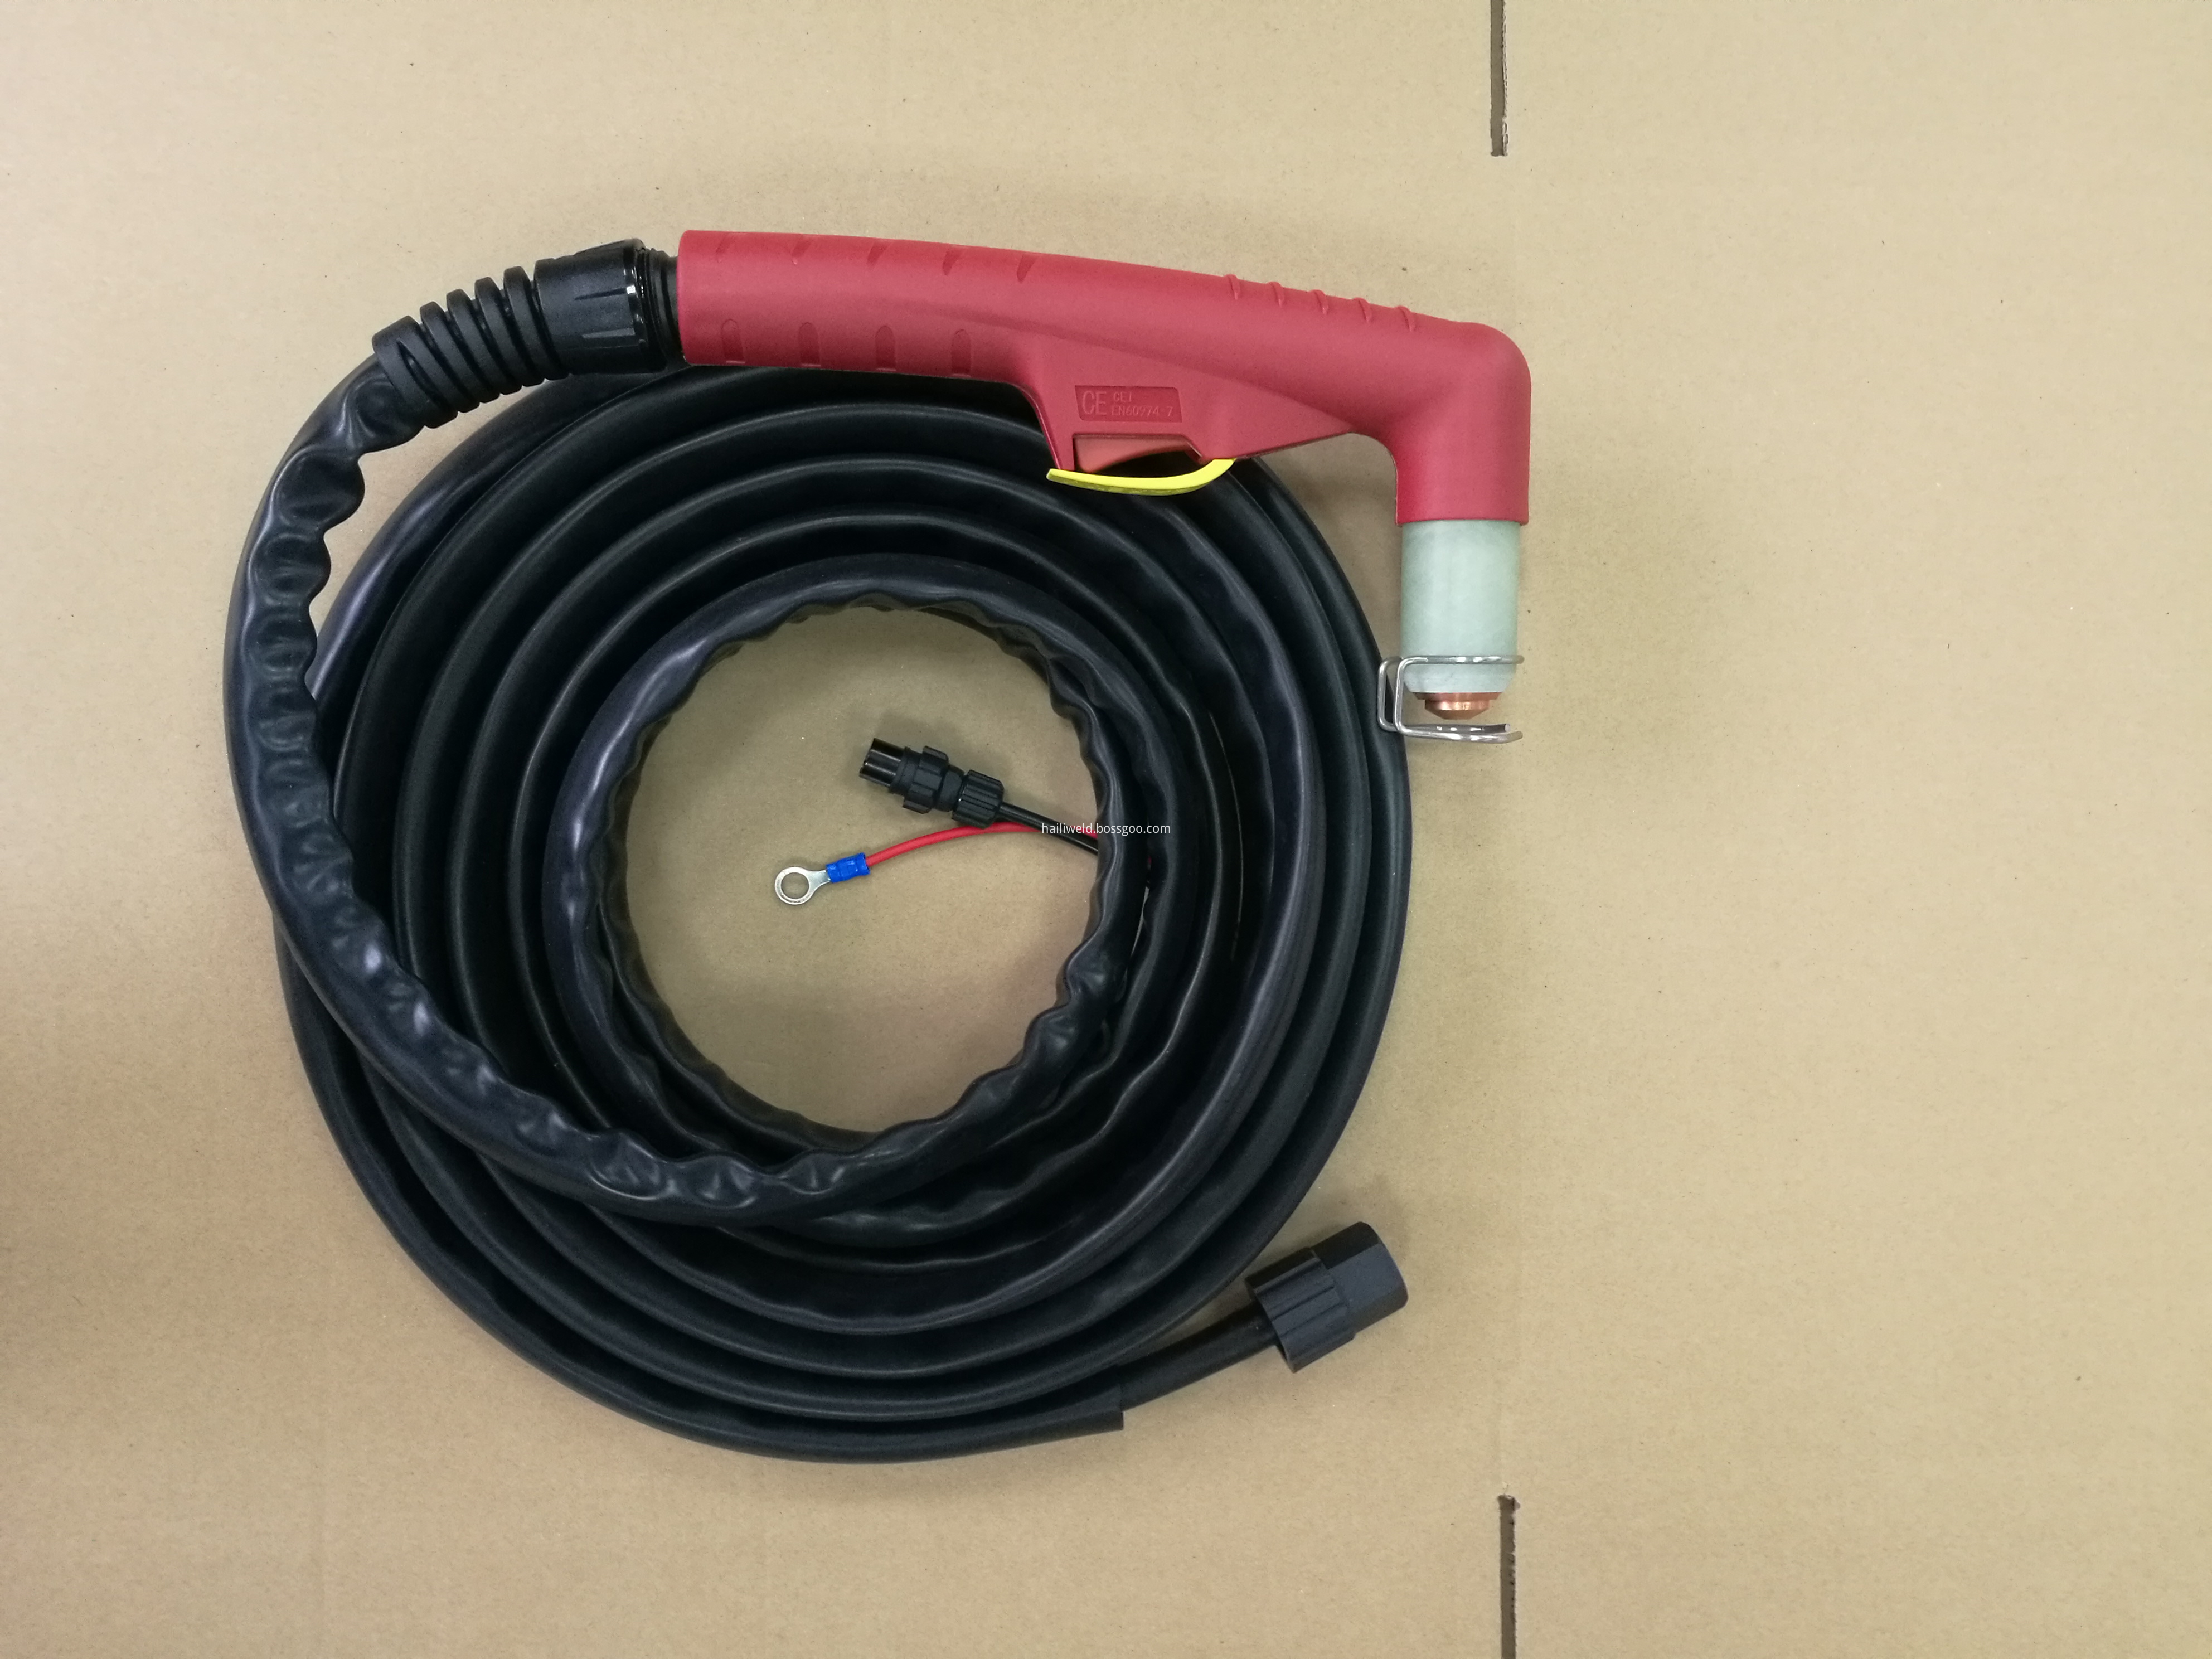 A141 Plasma Cutting Torch Compatible With Trafimet